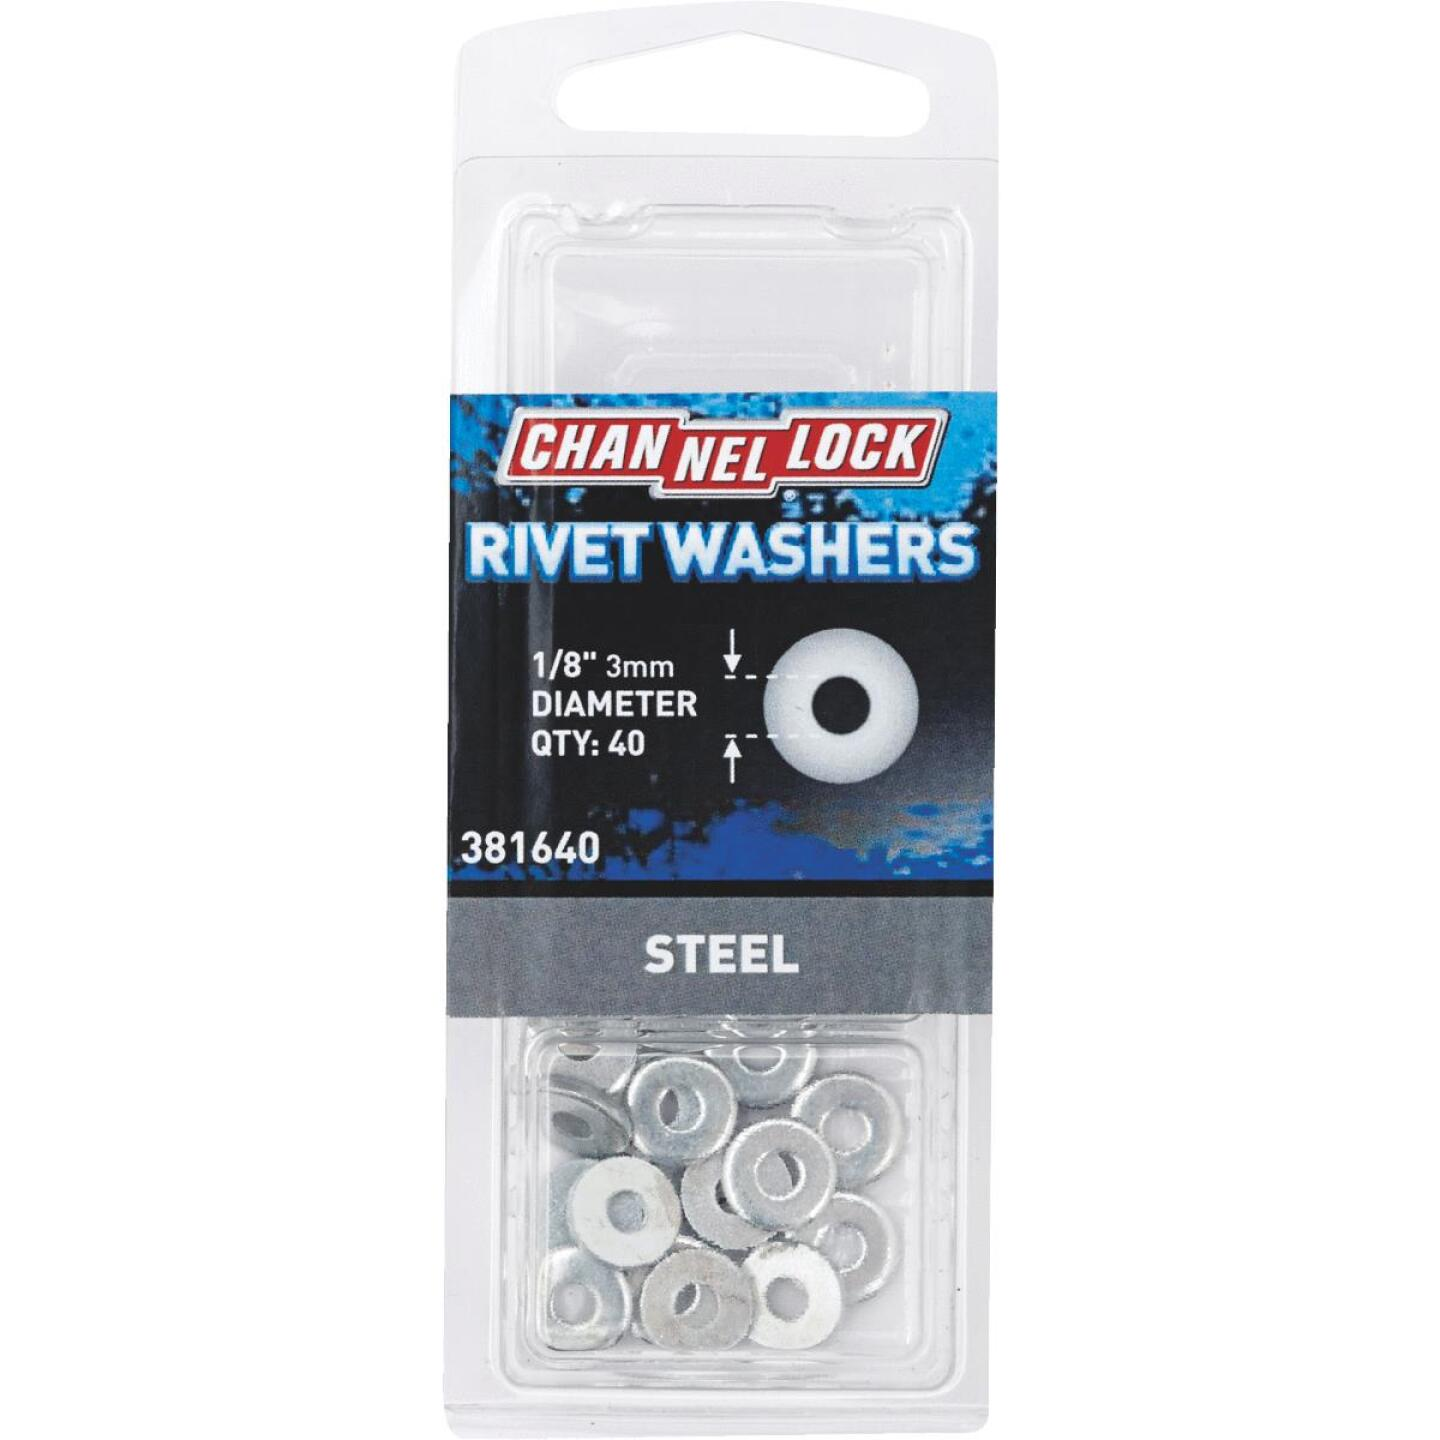 Channellock 1/8 in. Steel Rivet Washer (40-Pack) Image 1